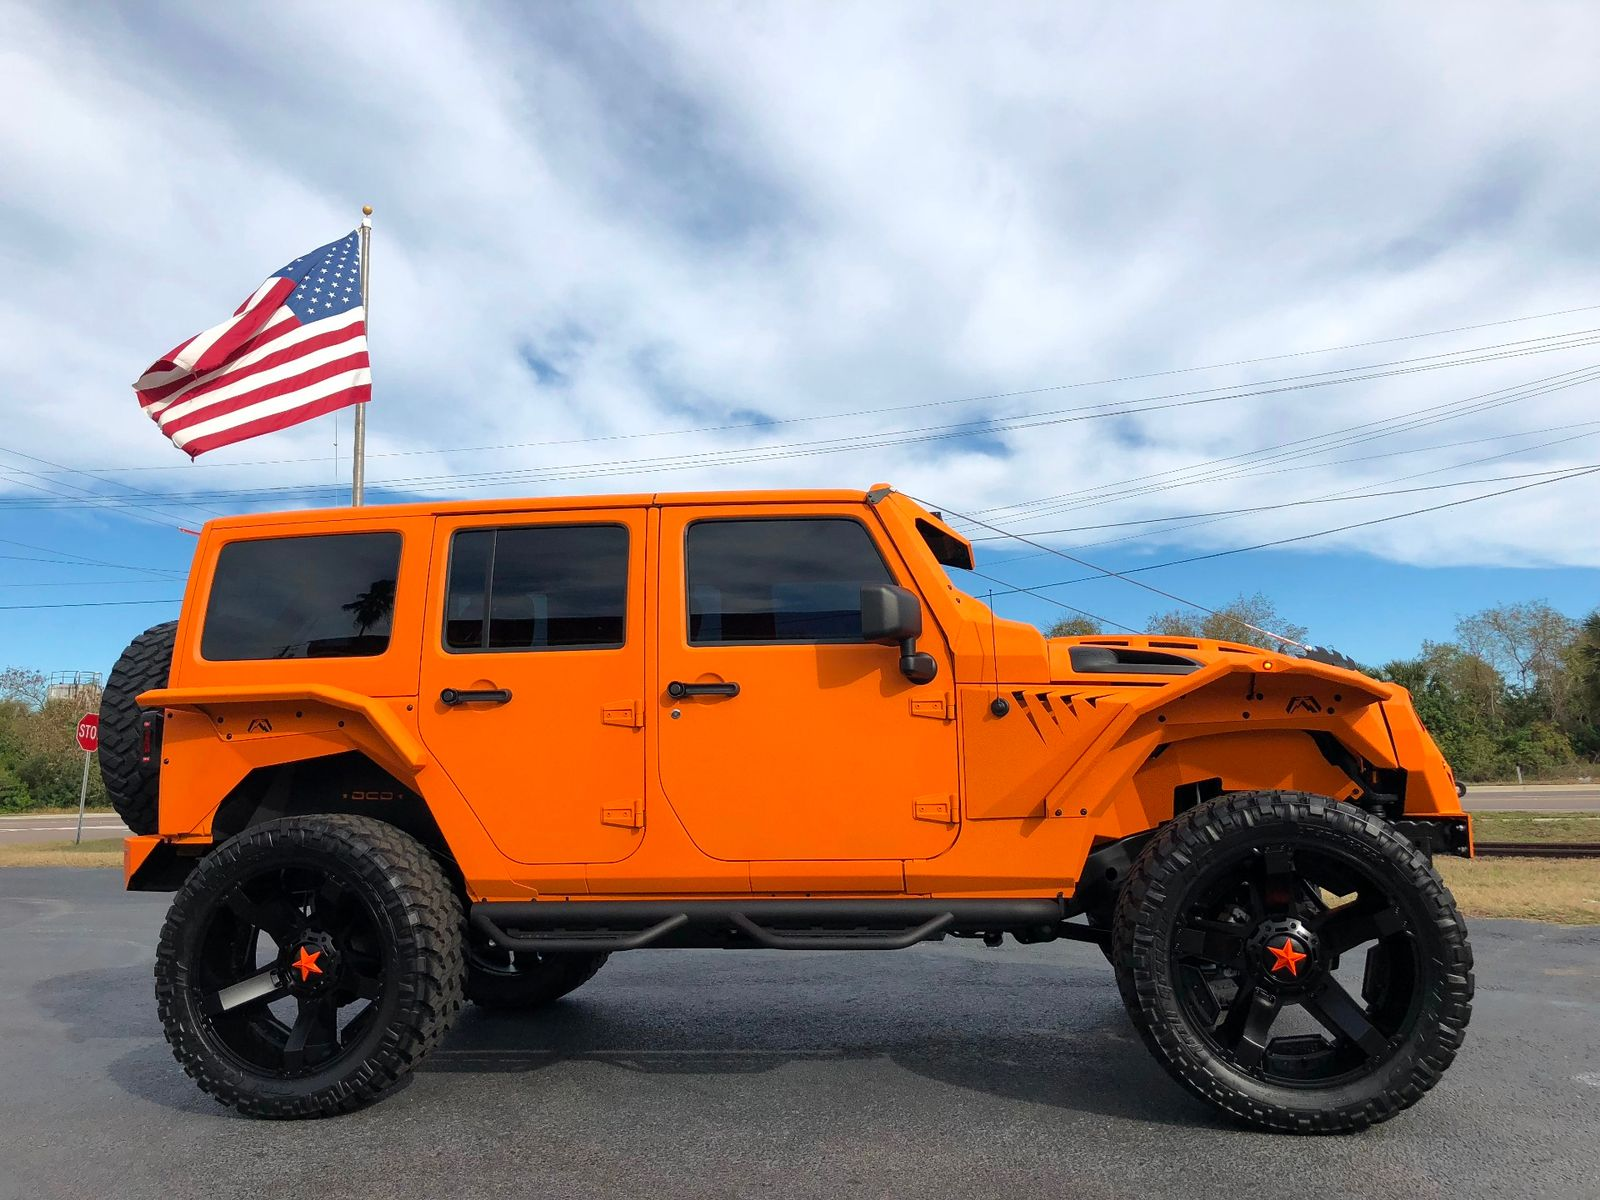 2017 jeep wrangler unlimited orange crush rubicon grumper 488 yukon florida bayshore automotive. Black Bedroom Furniture Sets. Home Design Ideas